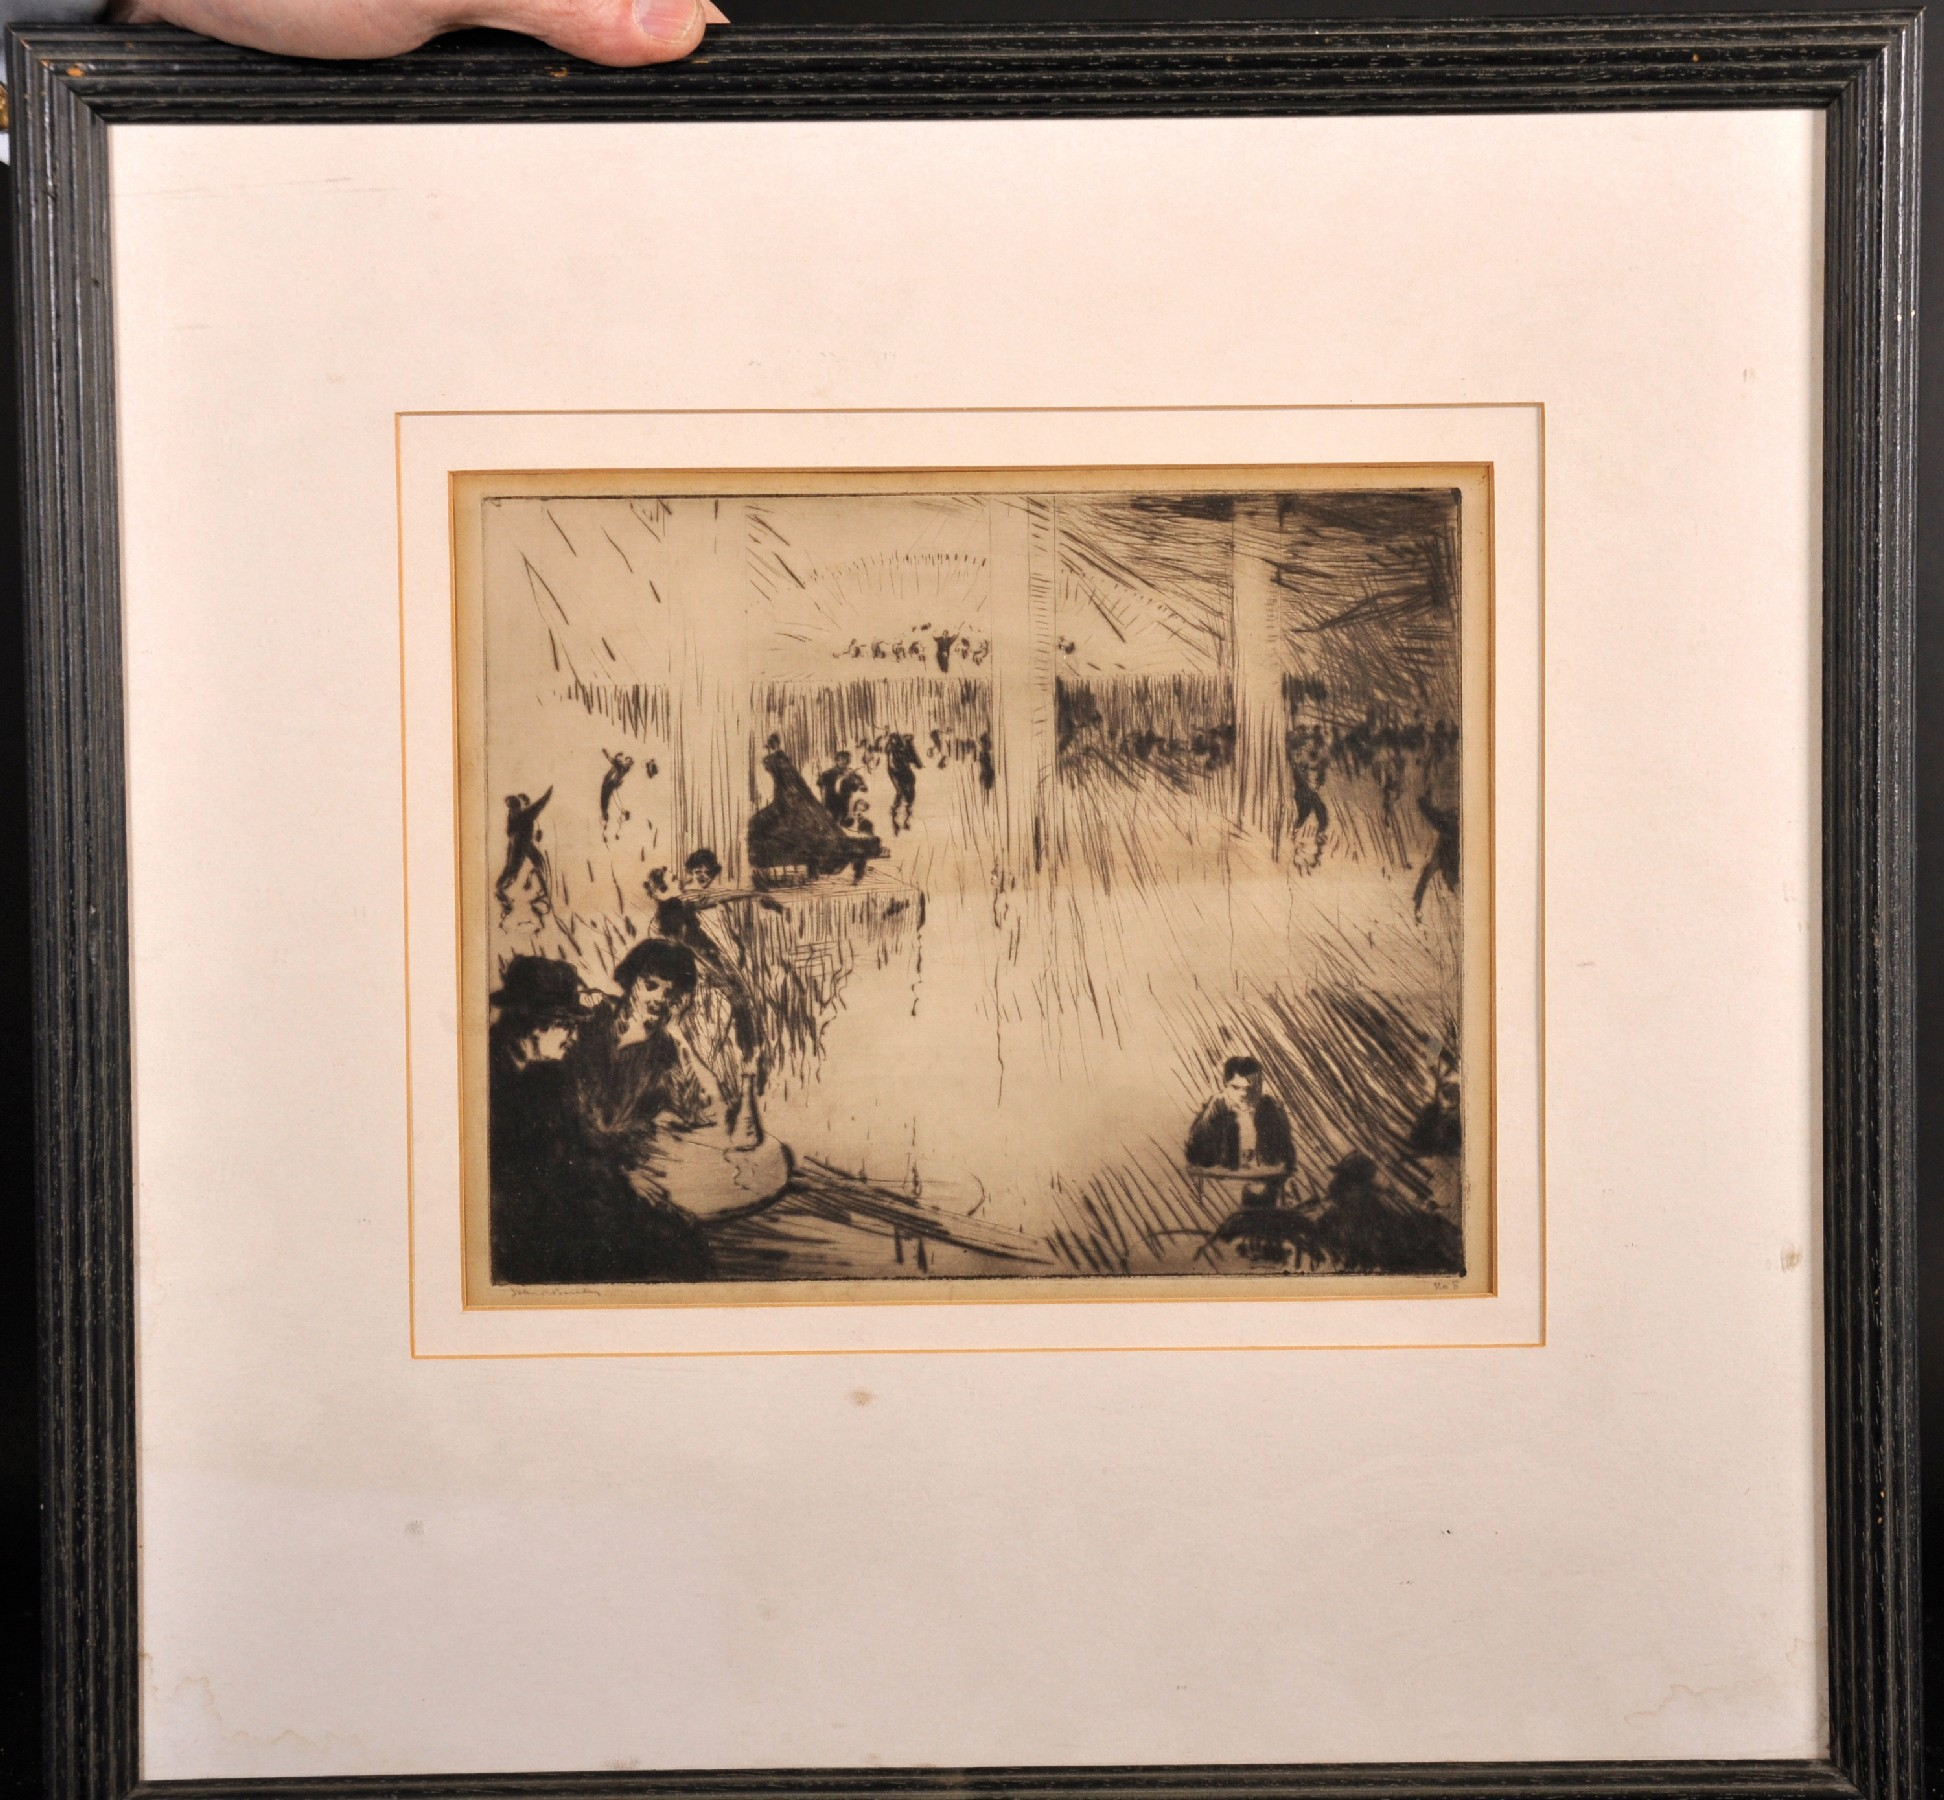 """John Rankine Barclay (1884-1962) British. """"Paris Dance Hall"""", Drypoint Etching, Signed and Inscribed - Image 2 of 6"""